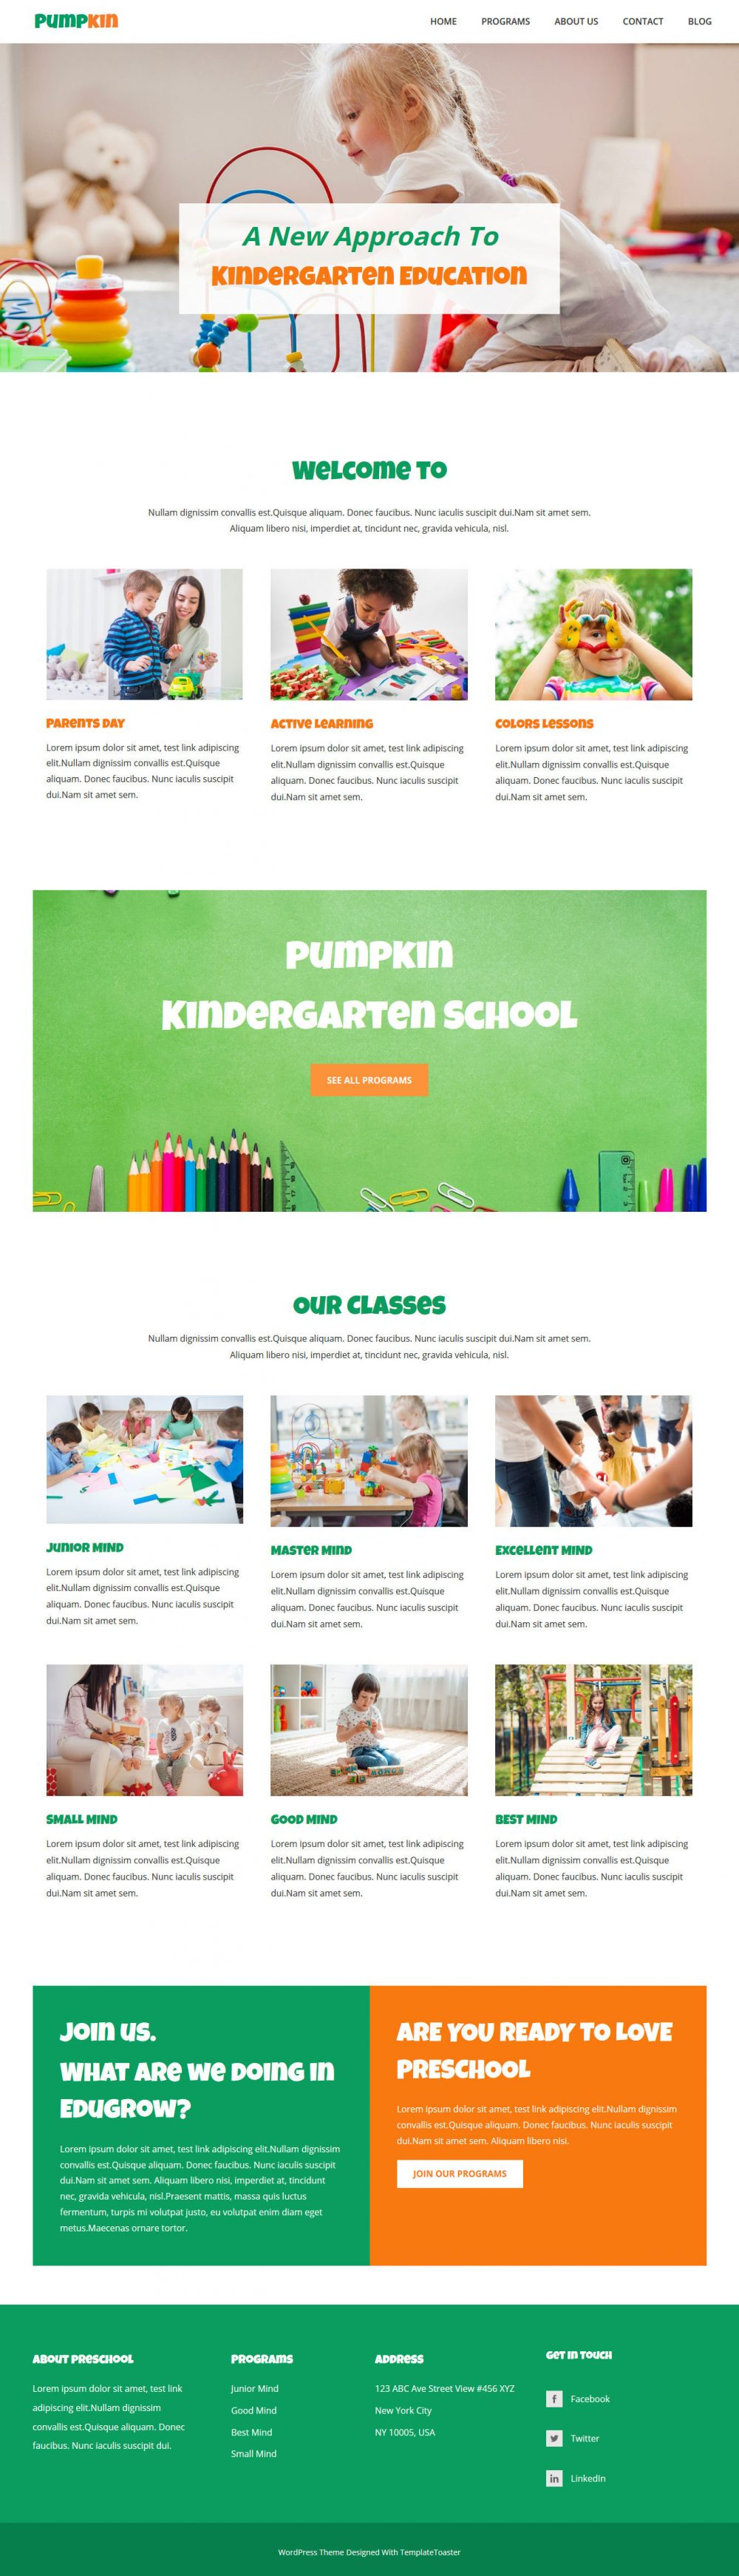 pumpkin kindergarten education wordpress theme